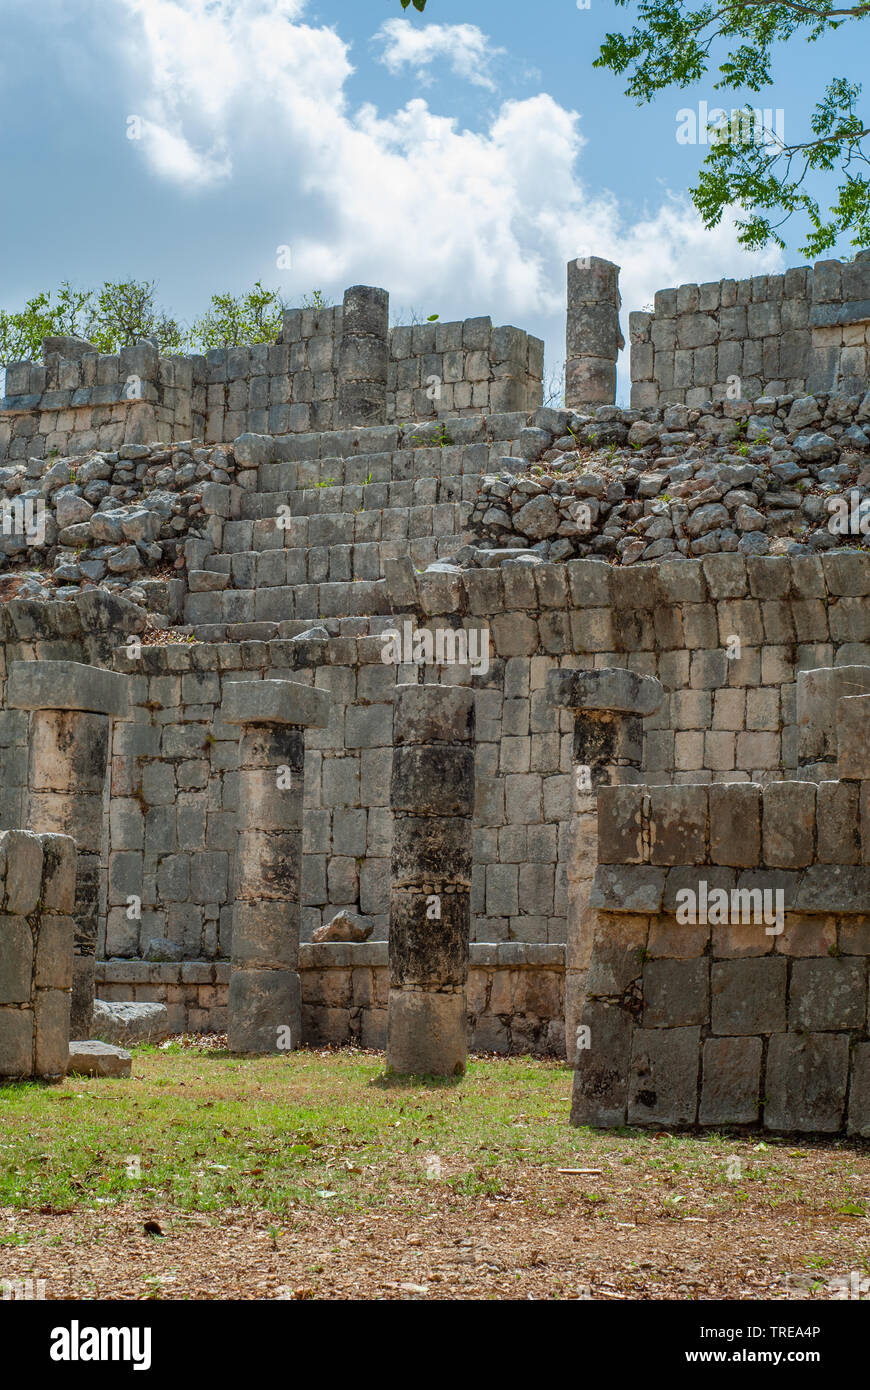 Remains of Maya buildings, in the archaeological area of Chichen Itza, on the Yucatan peninsula - Stock Image